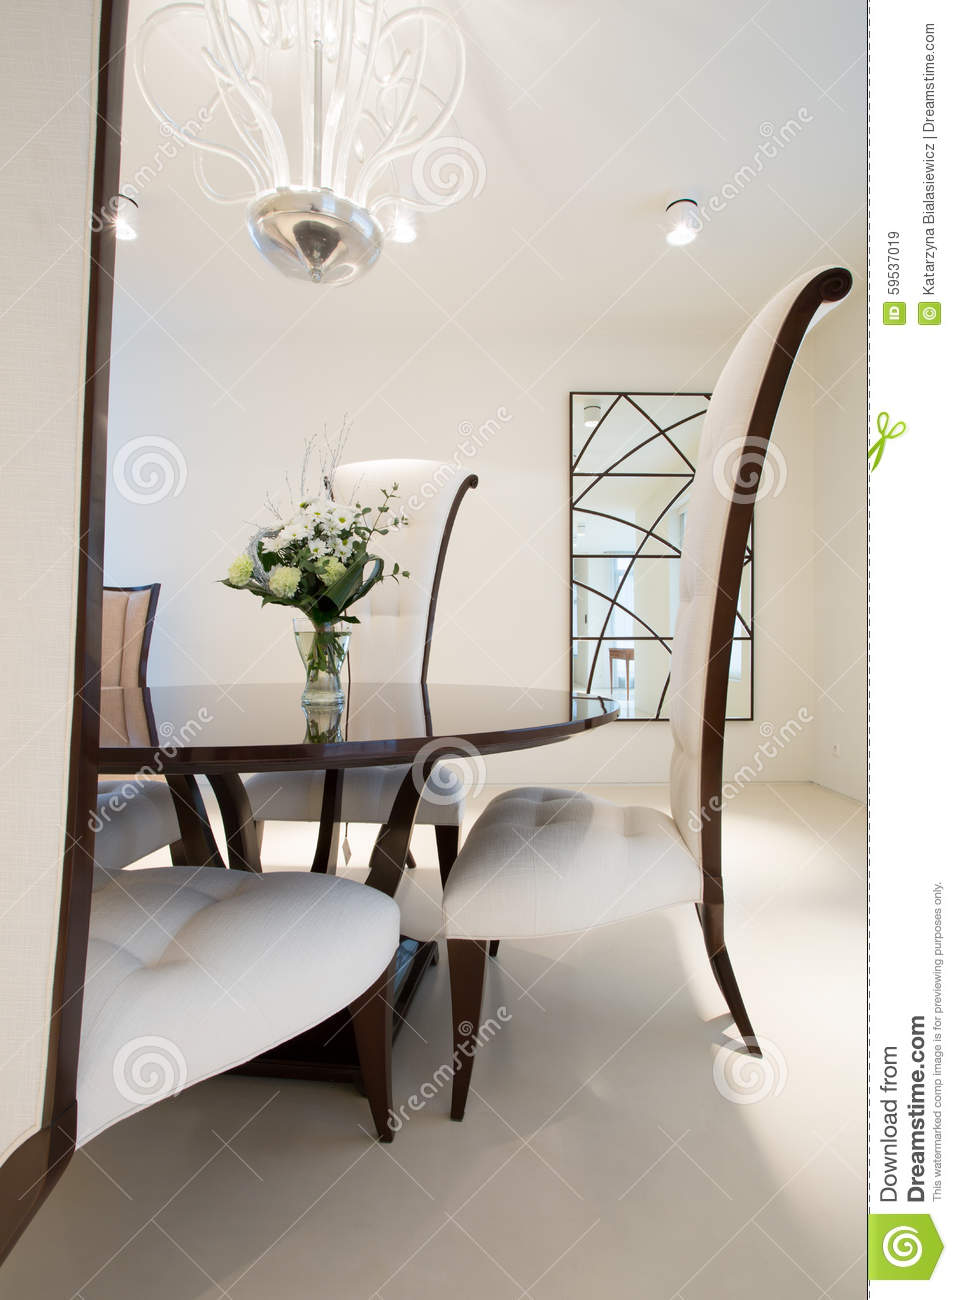 Exclusive Dining Room Stock Photo Image 59537019